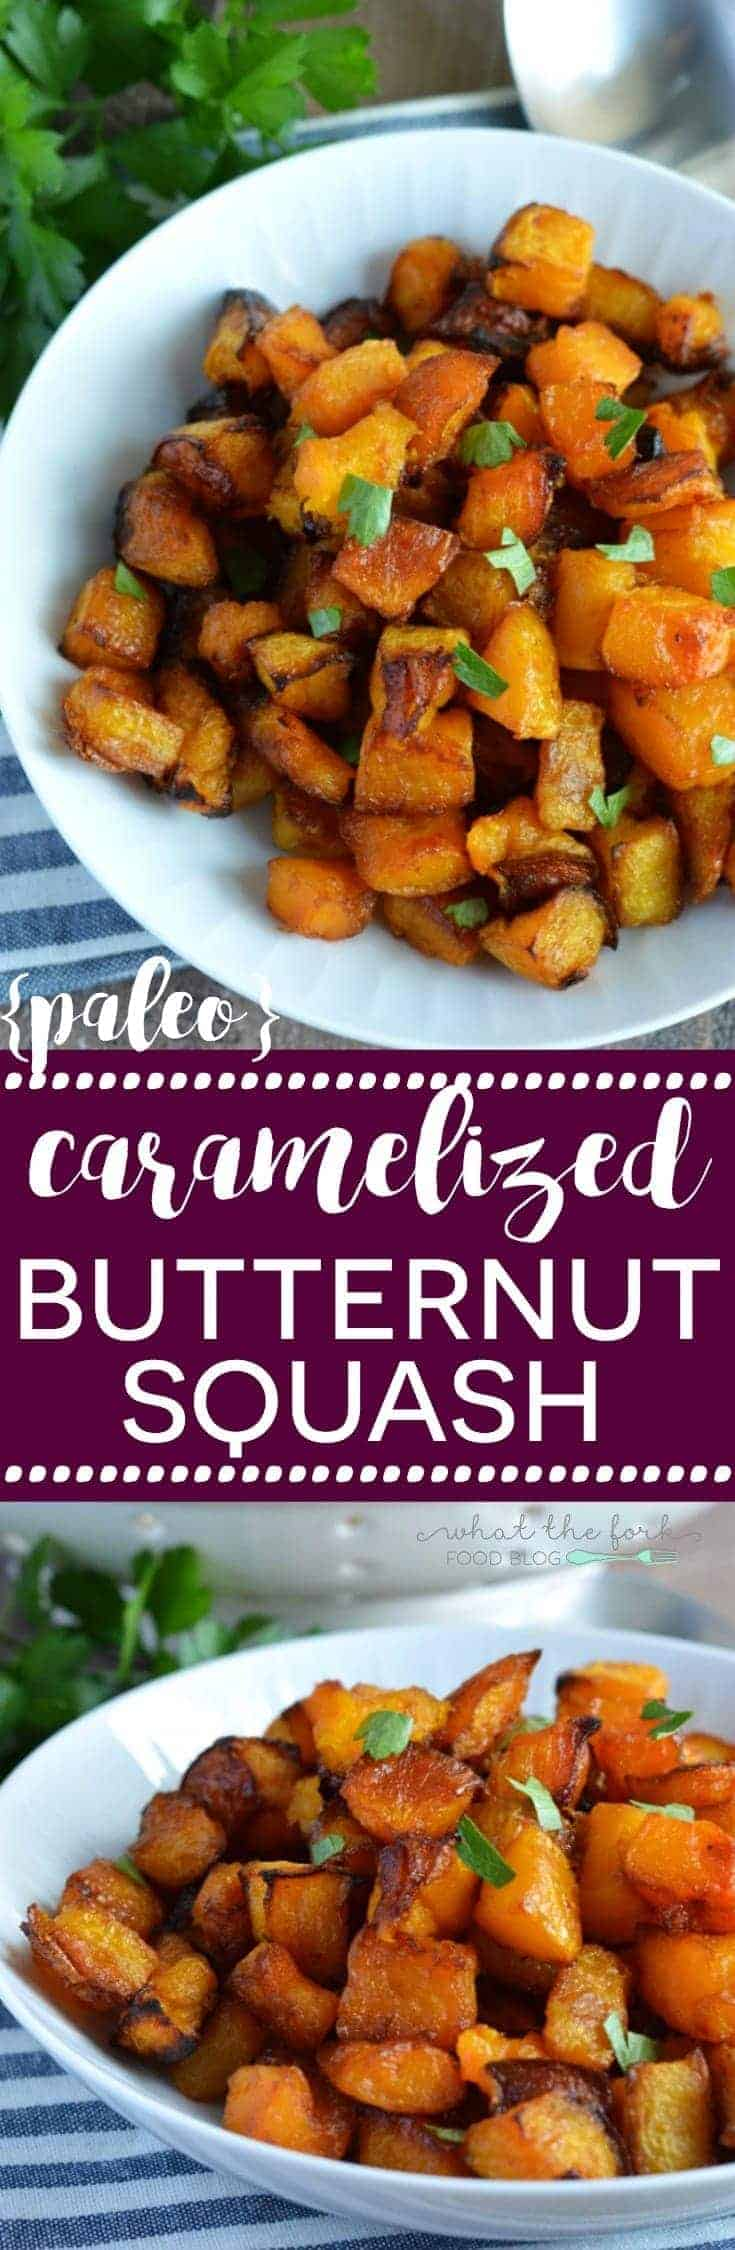 Caramelized Butternut Squash (Paleo and healthy) from What The Fork Food Blog | whattheforkfoodblog.com